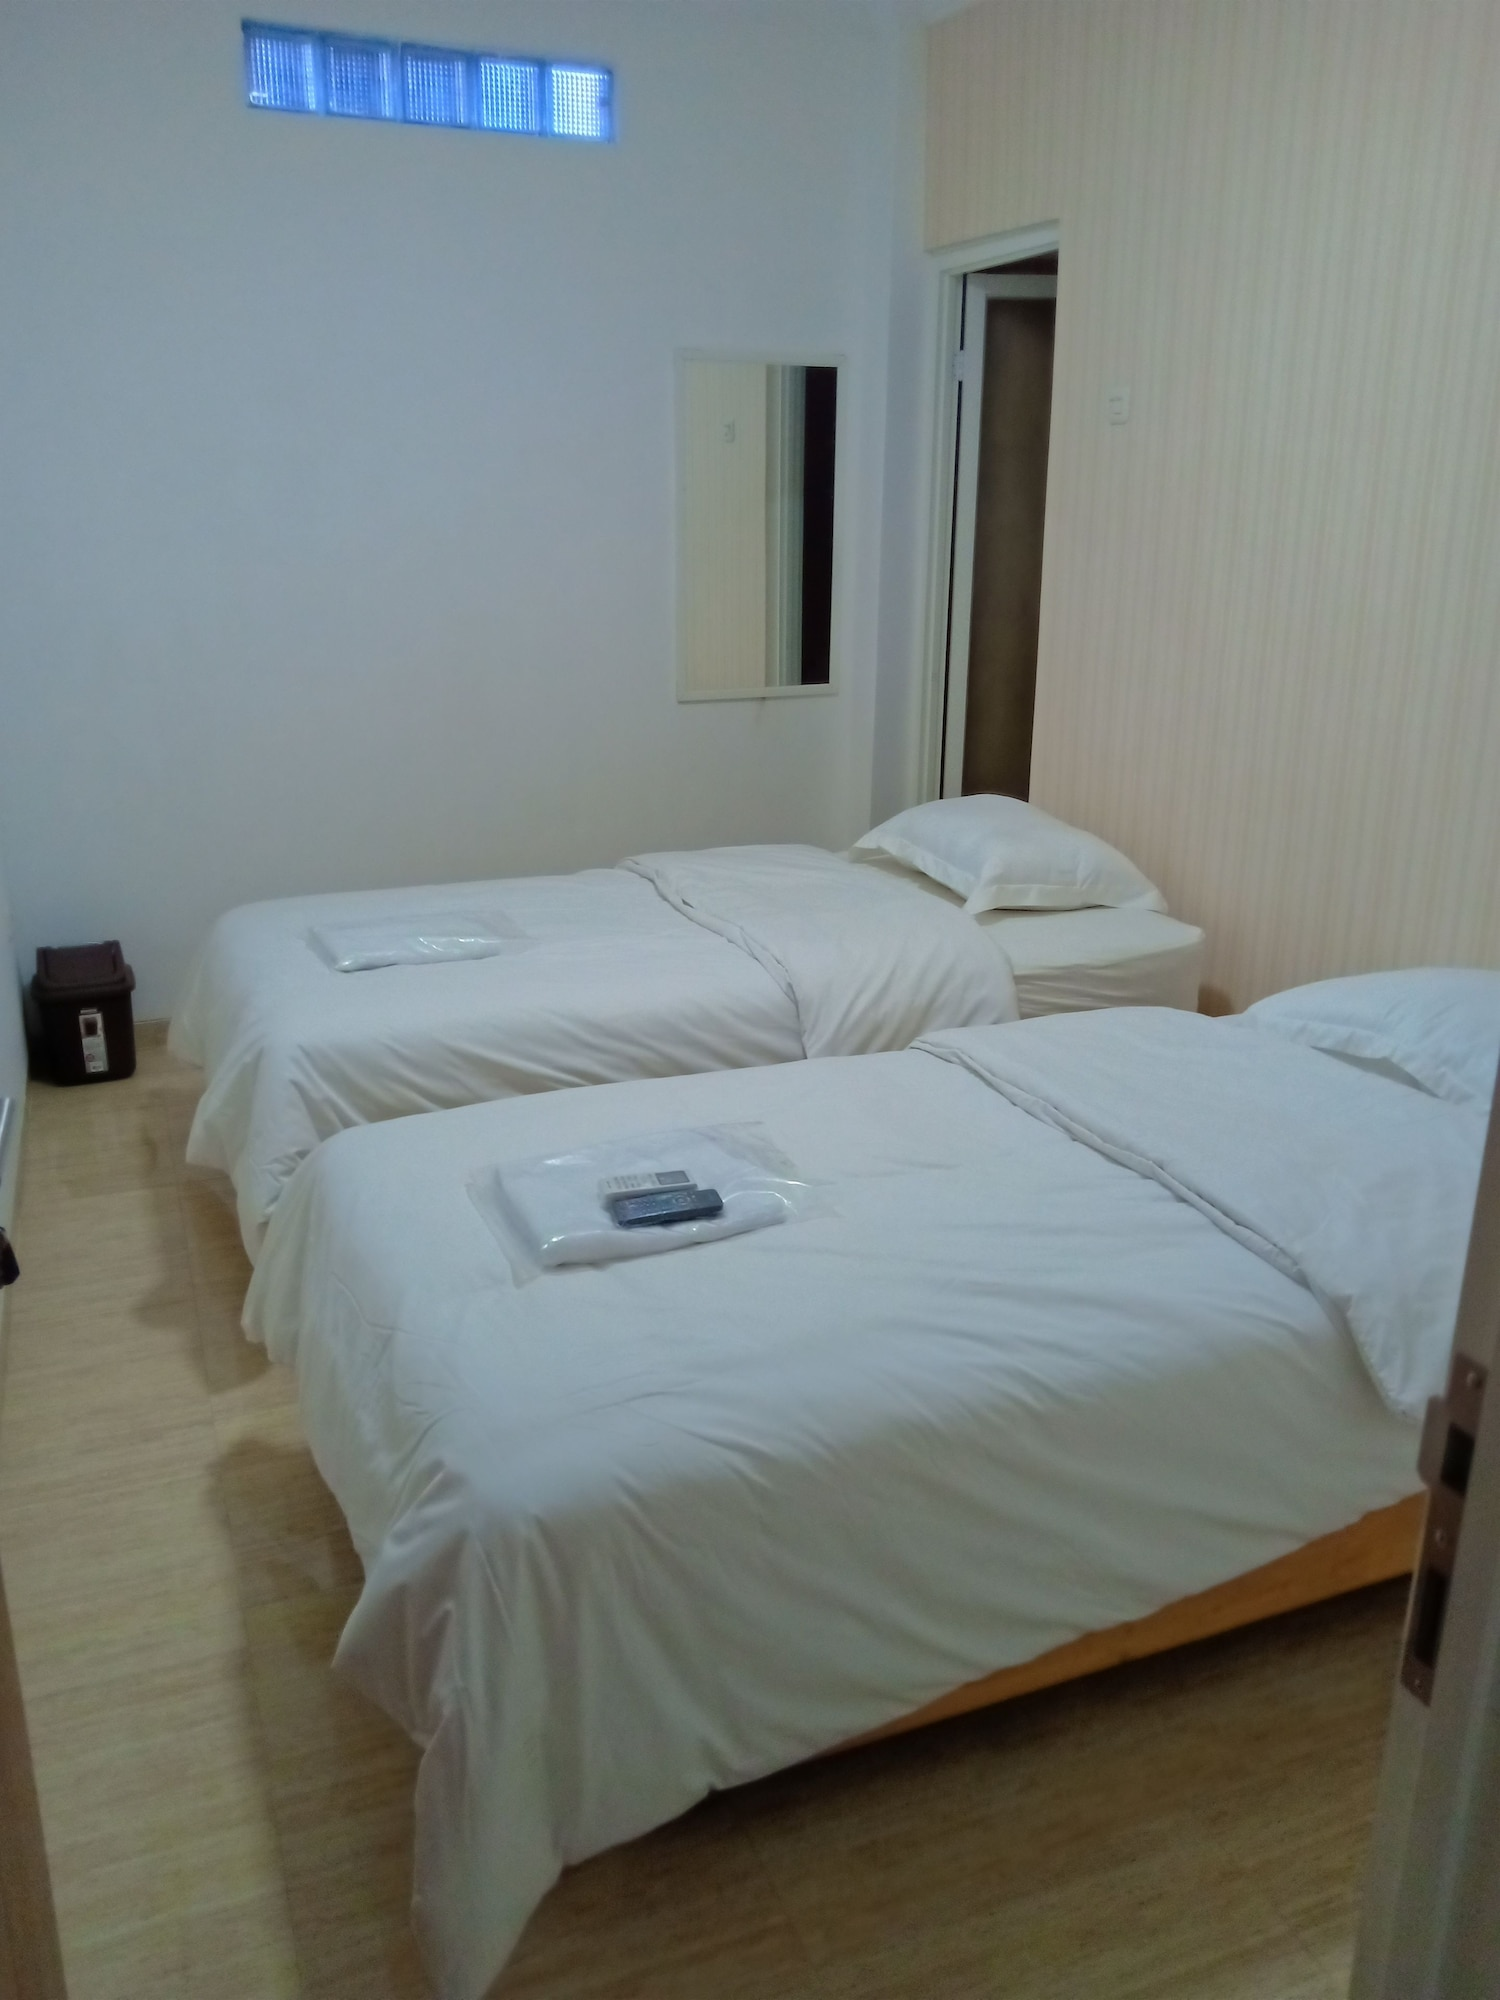 111 Guest House, Malang